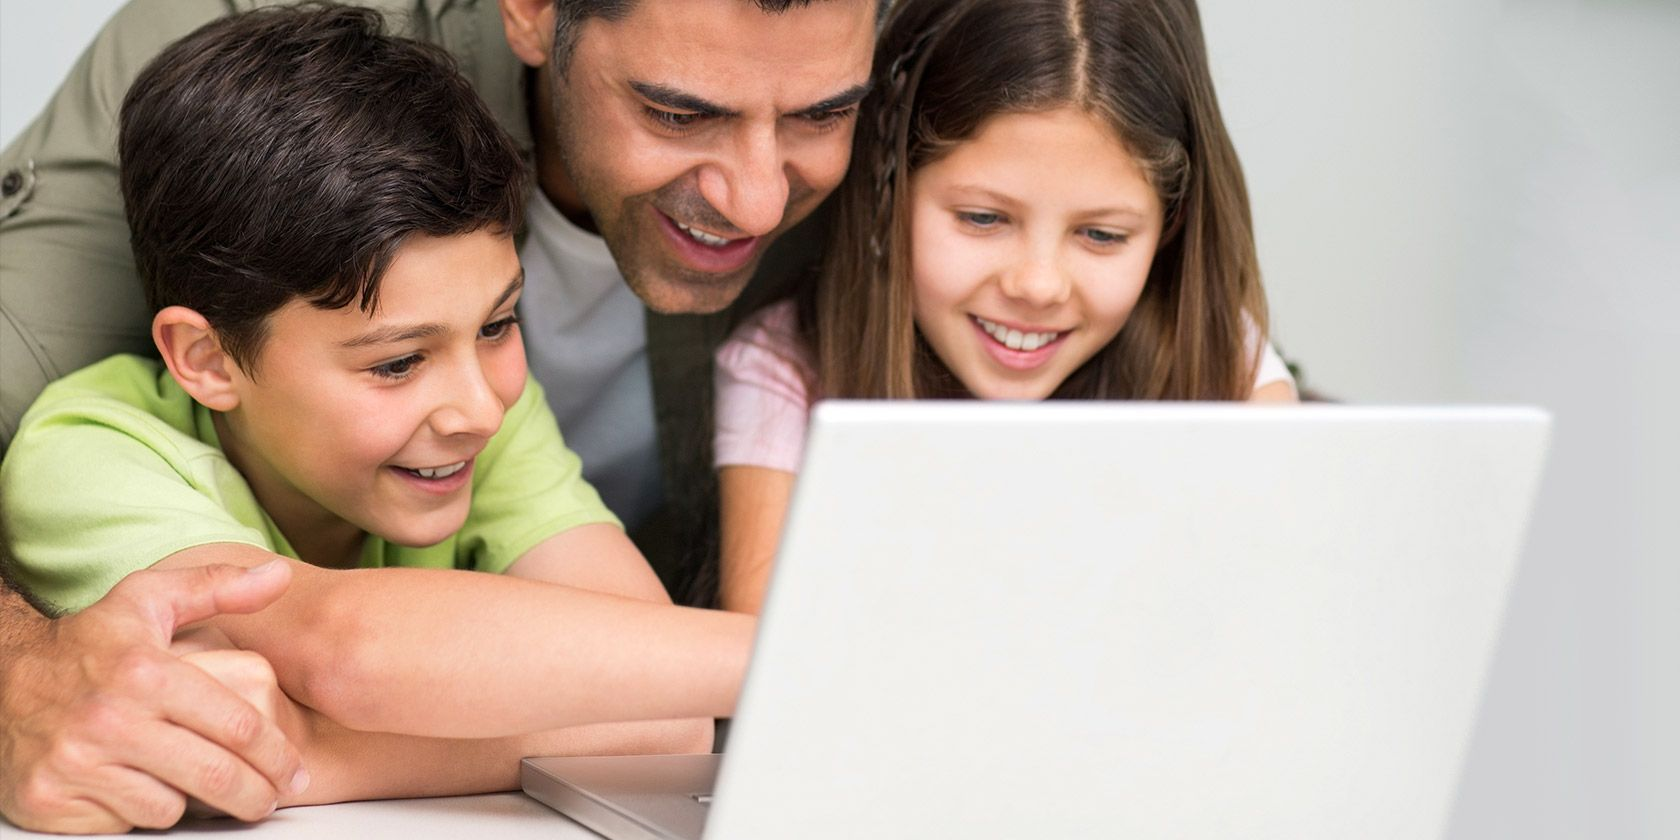 7 Family Safety Tools To Keep Your Kids Safe Online